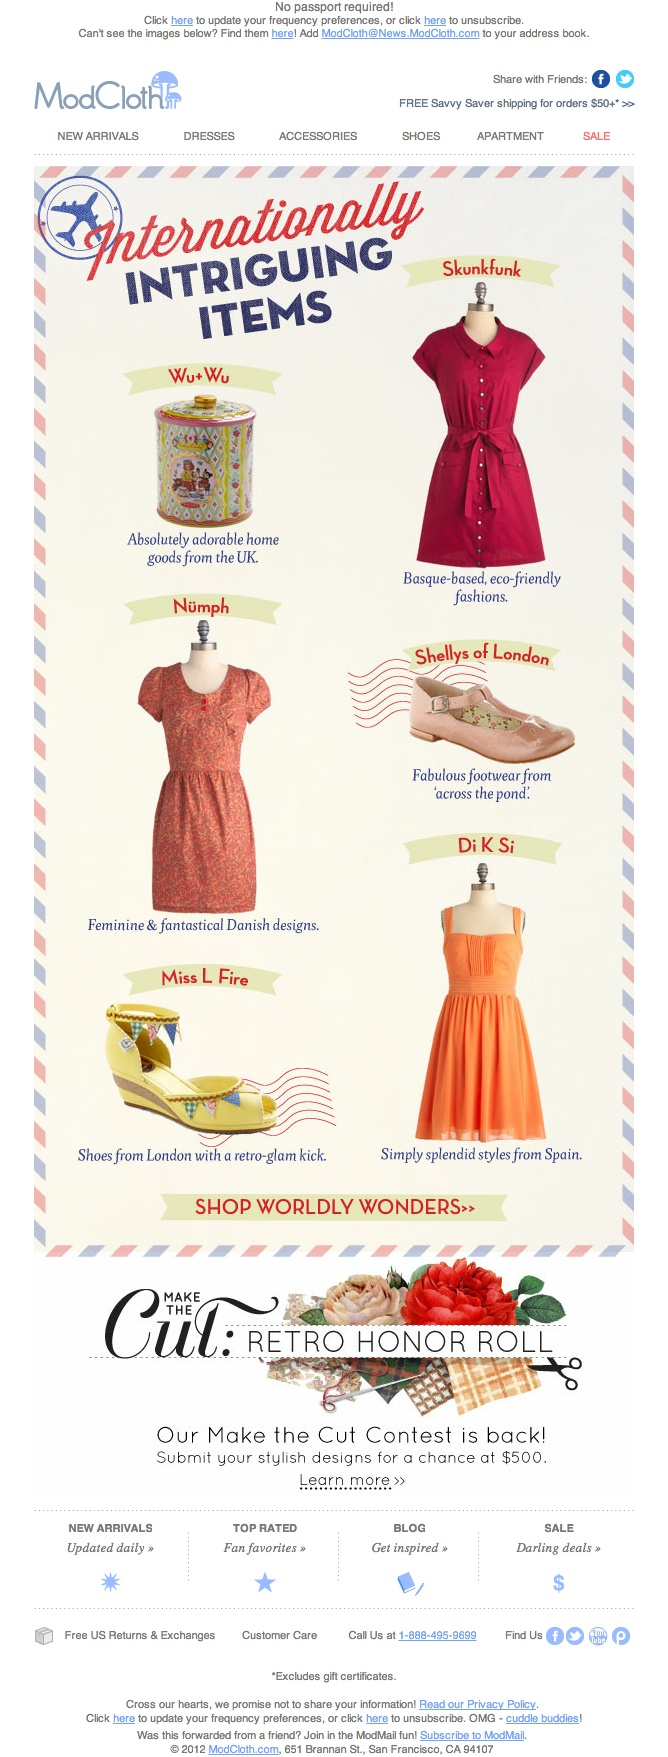 #newsletter #design #fashion http://www.modcloth.com/